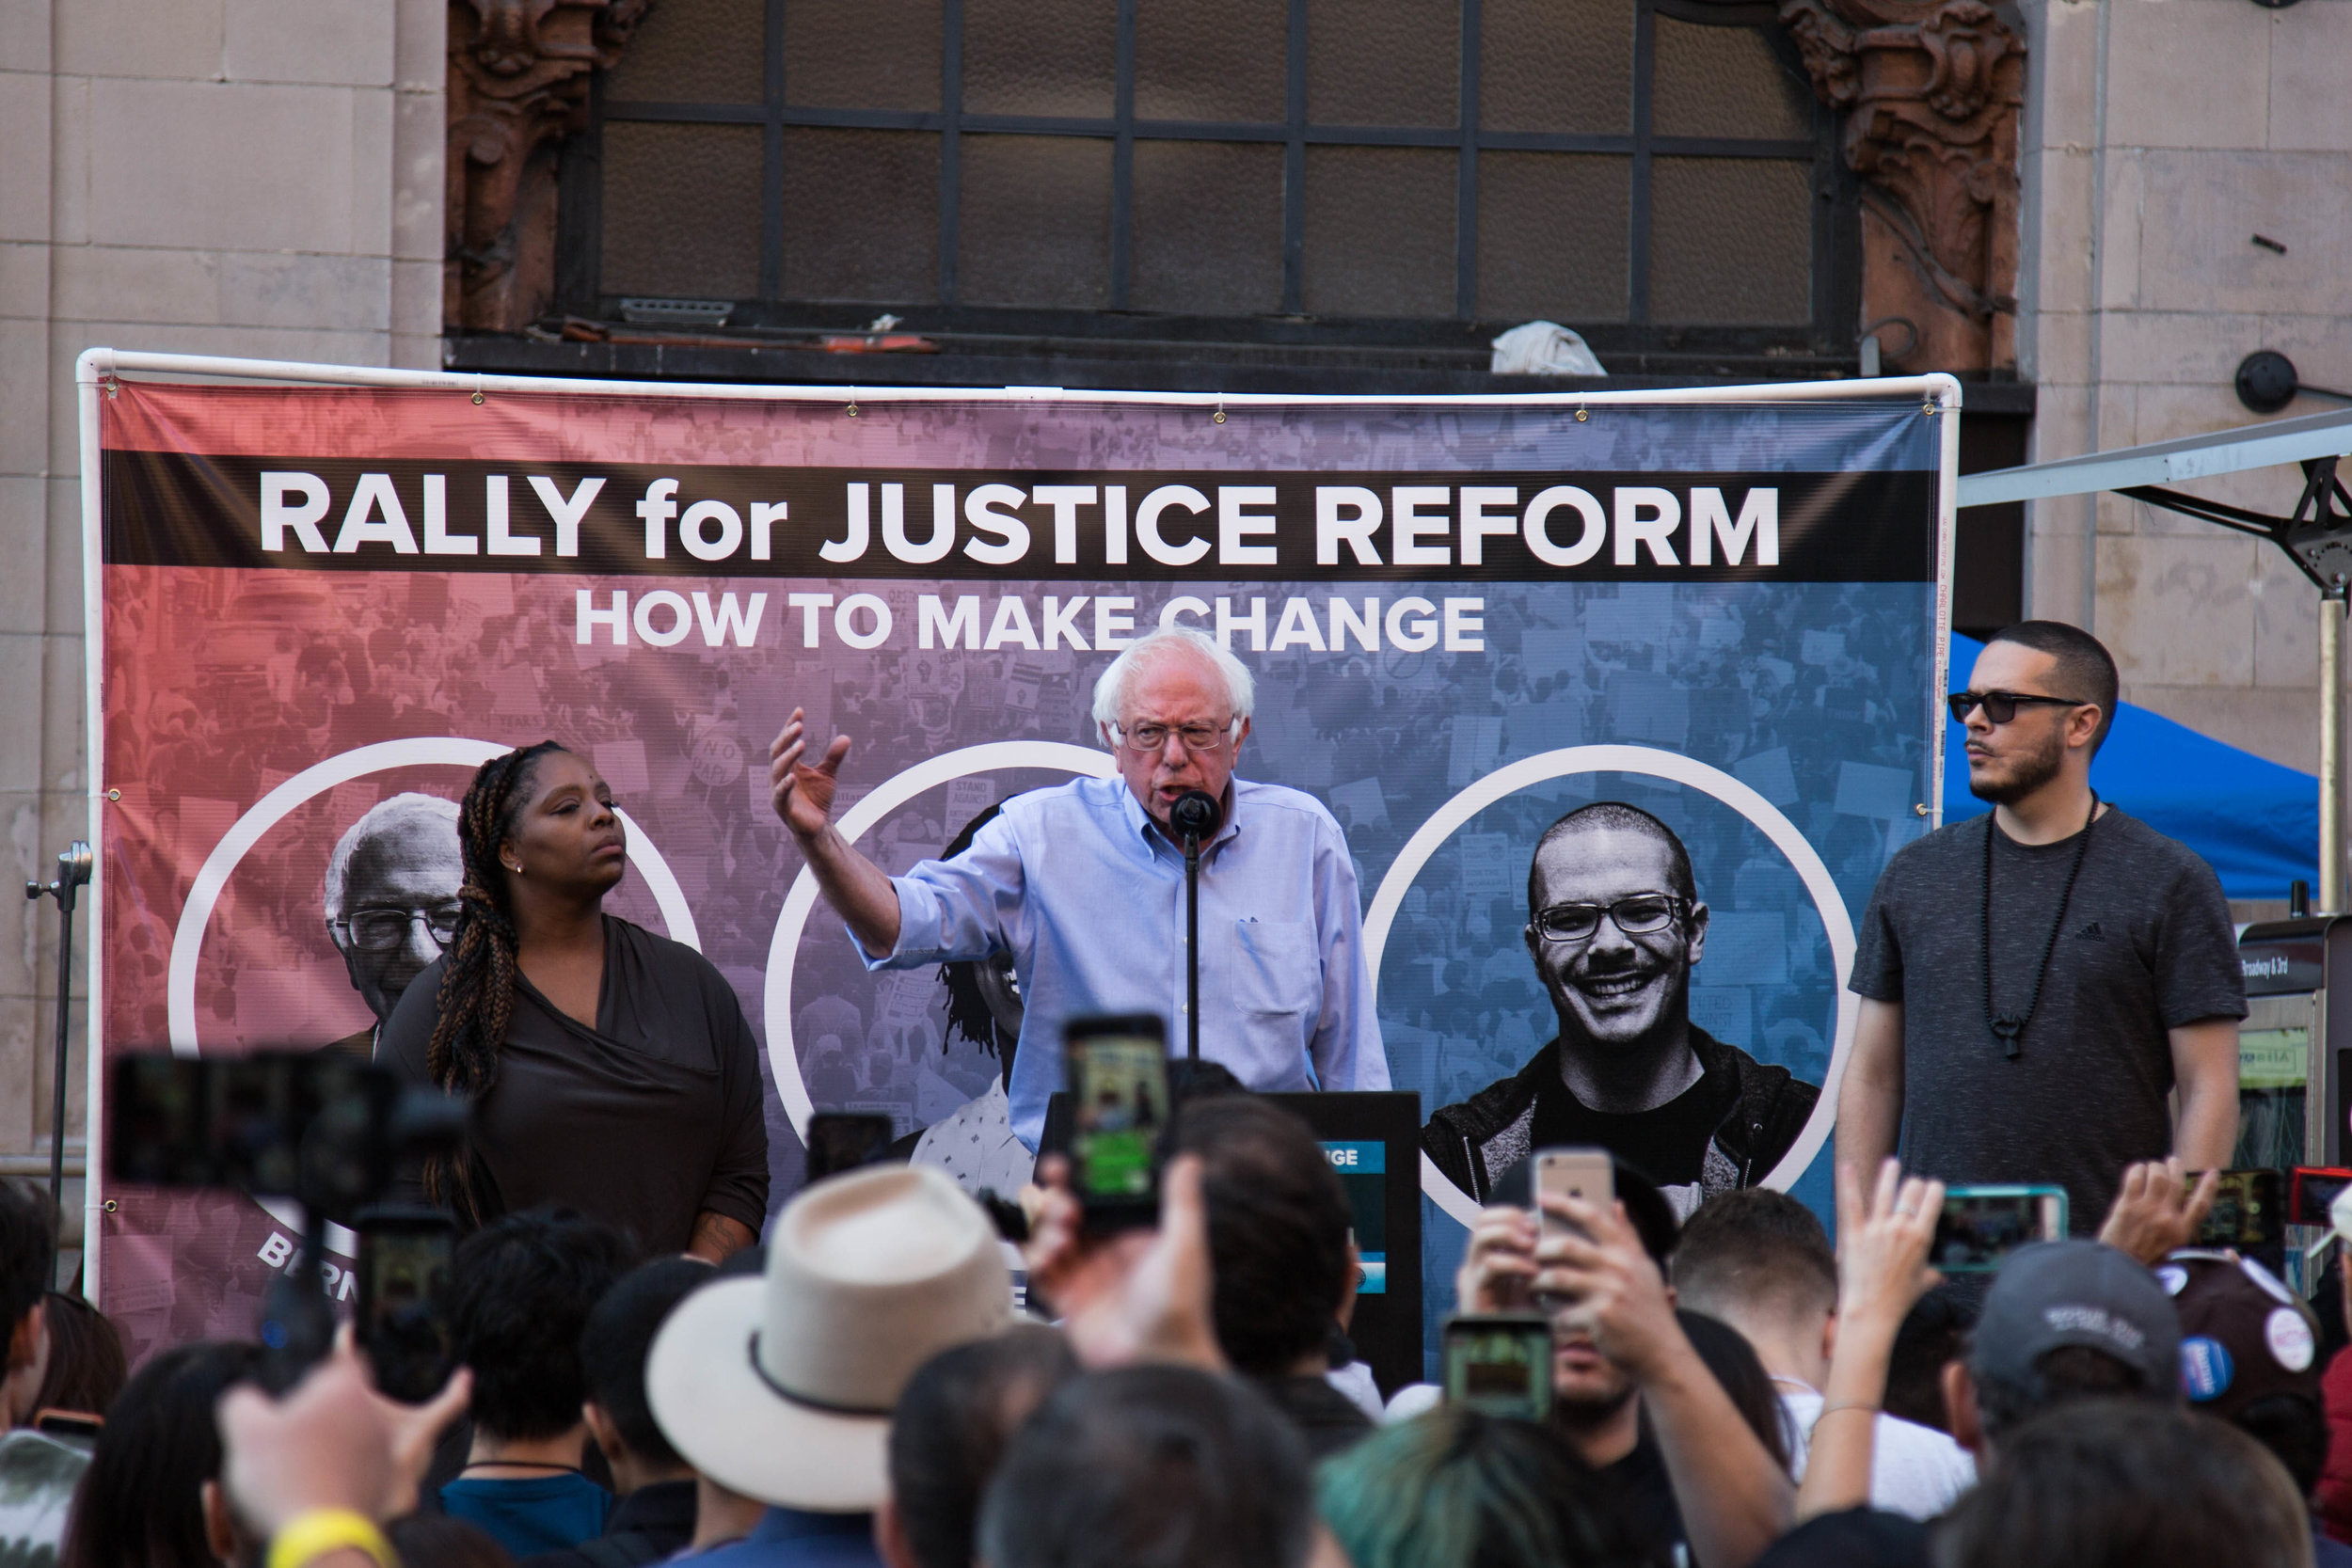 Senator Bernie Sanders gives a speech at outside of Million Dollar Theater during Rally for Justice Reform on June 2nd, 2018 at Downtown Los Angeles, California. (Yuki Iwamura/Corsair Contributor)